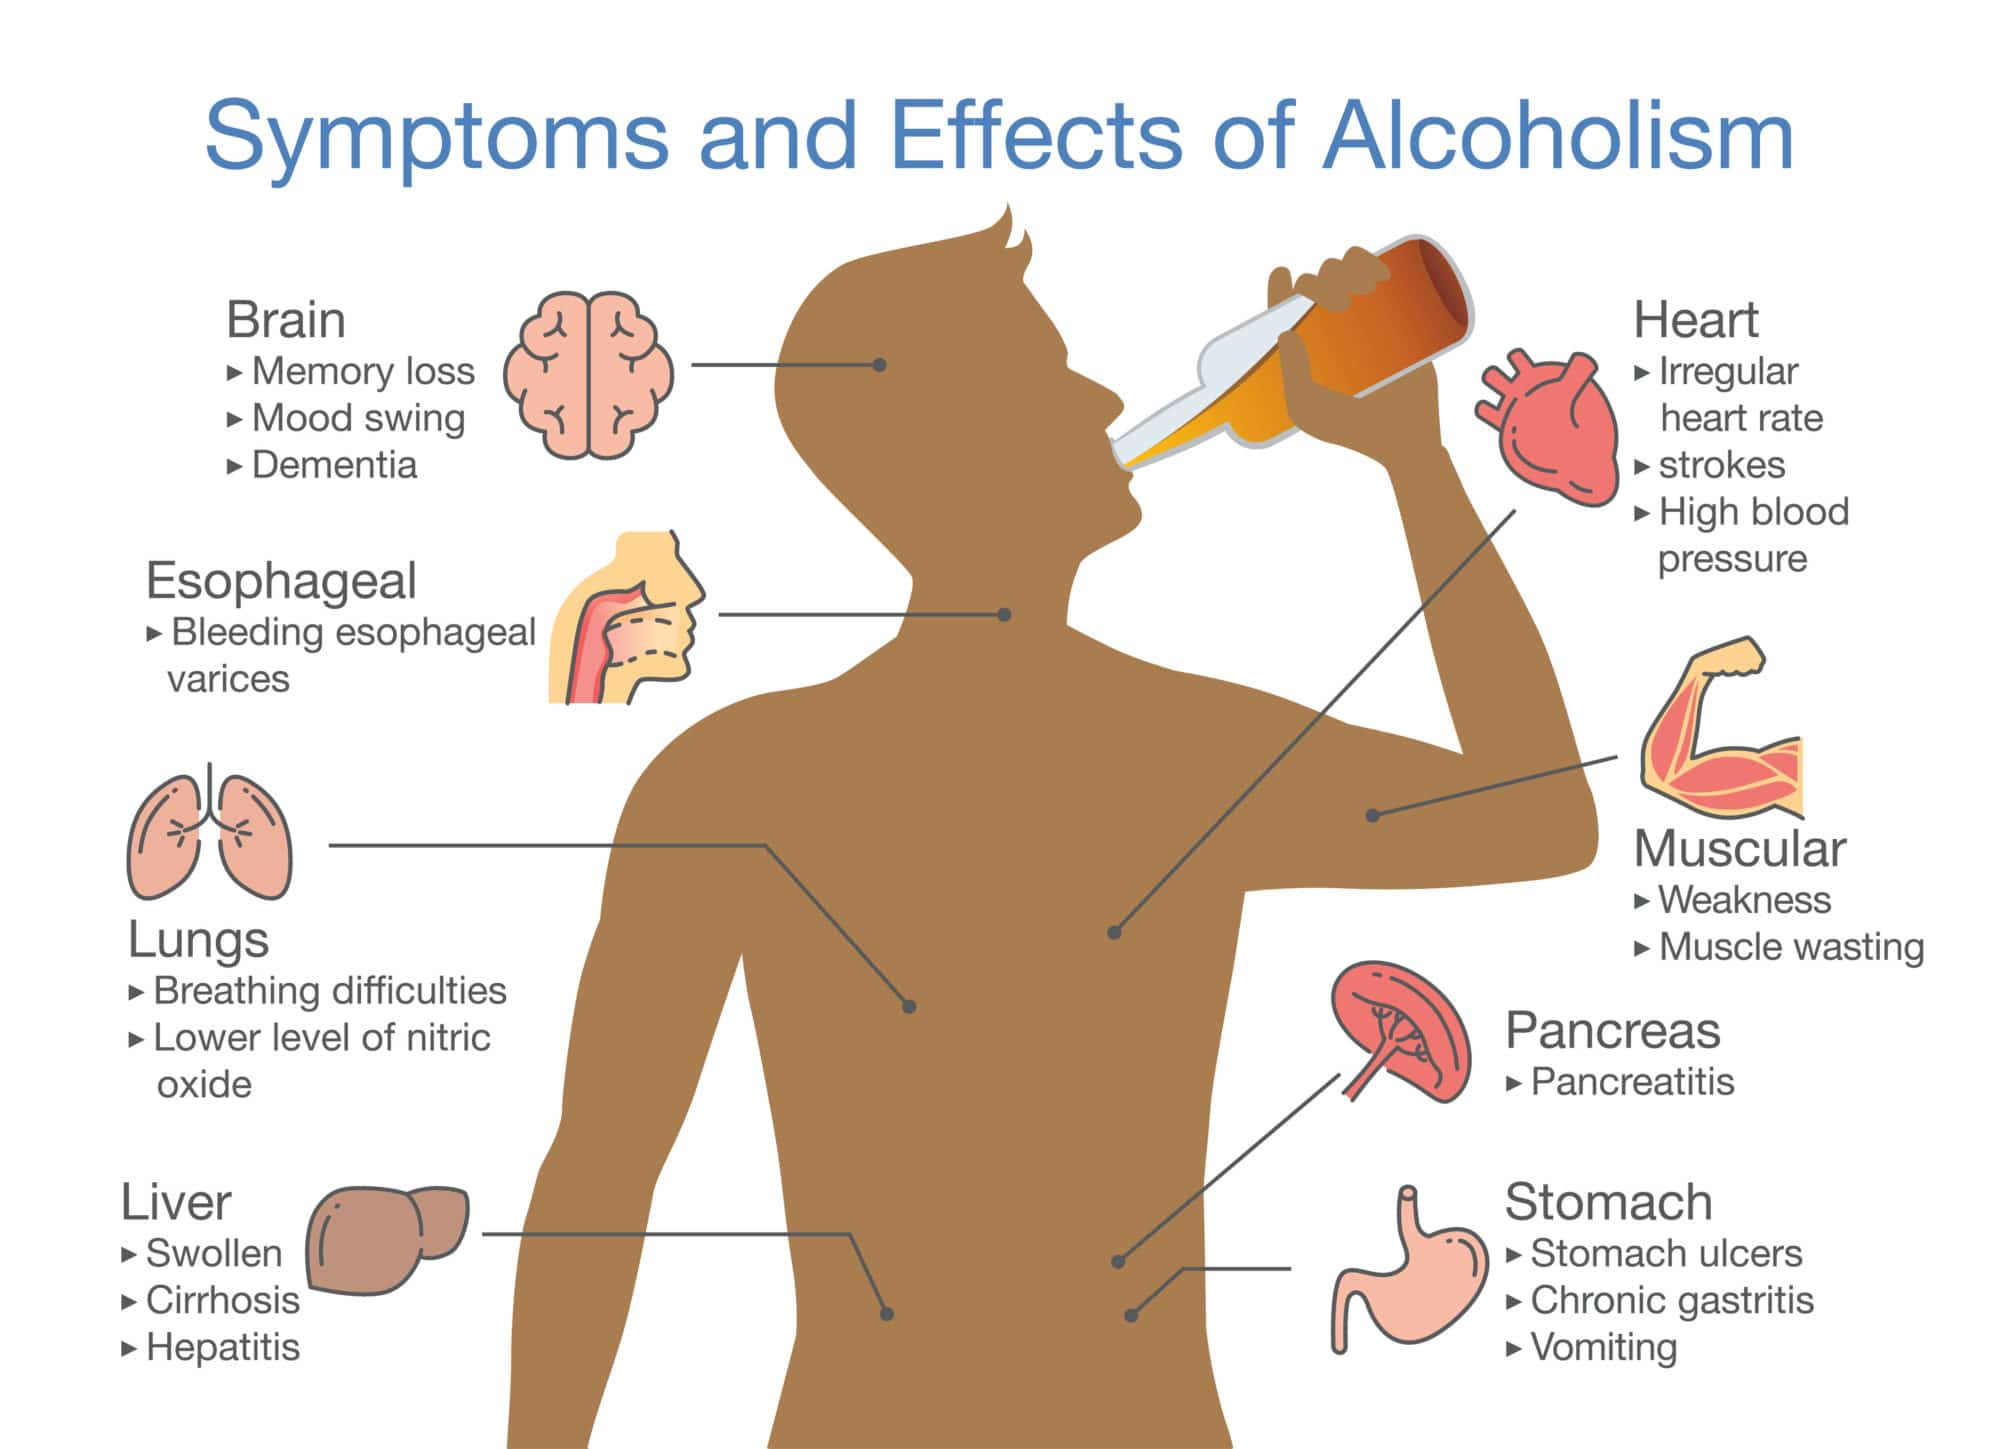 The Long Term Effects of Alcohol Abuse Can Be Devastating